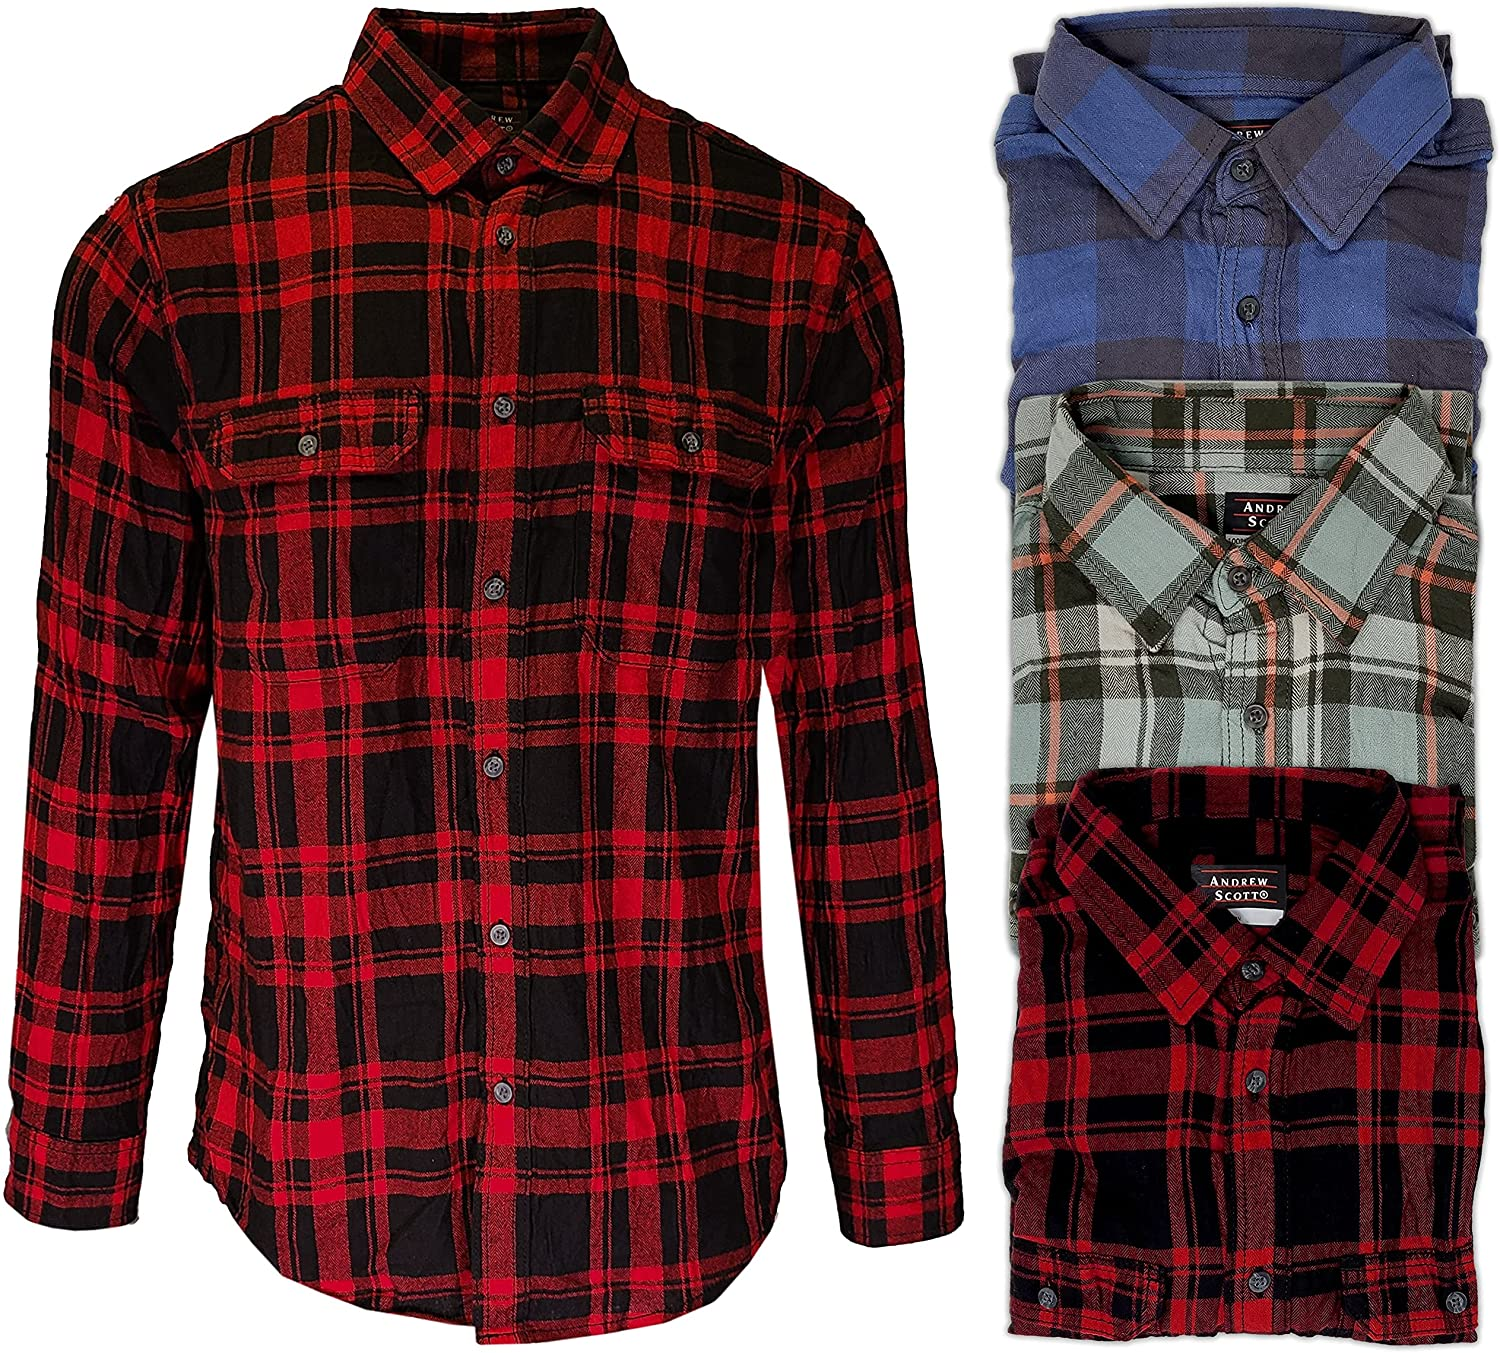 Andrew Scott Men's Button Down Regular Fit Long Sleeve Plaid Flannel Casual Shirts -Pack of 3